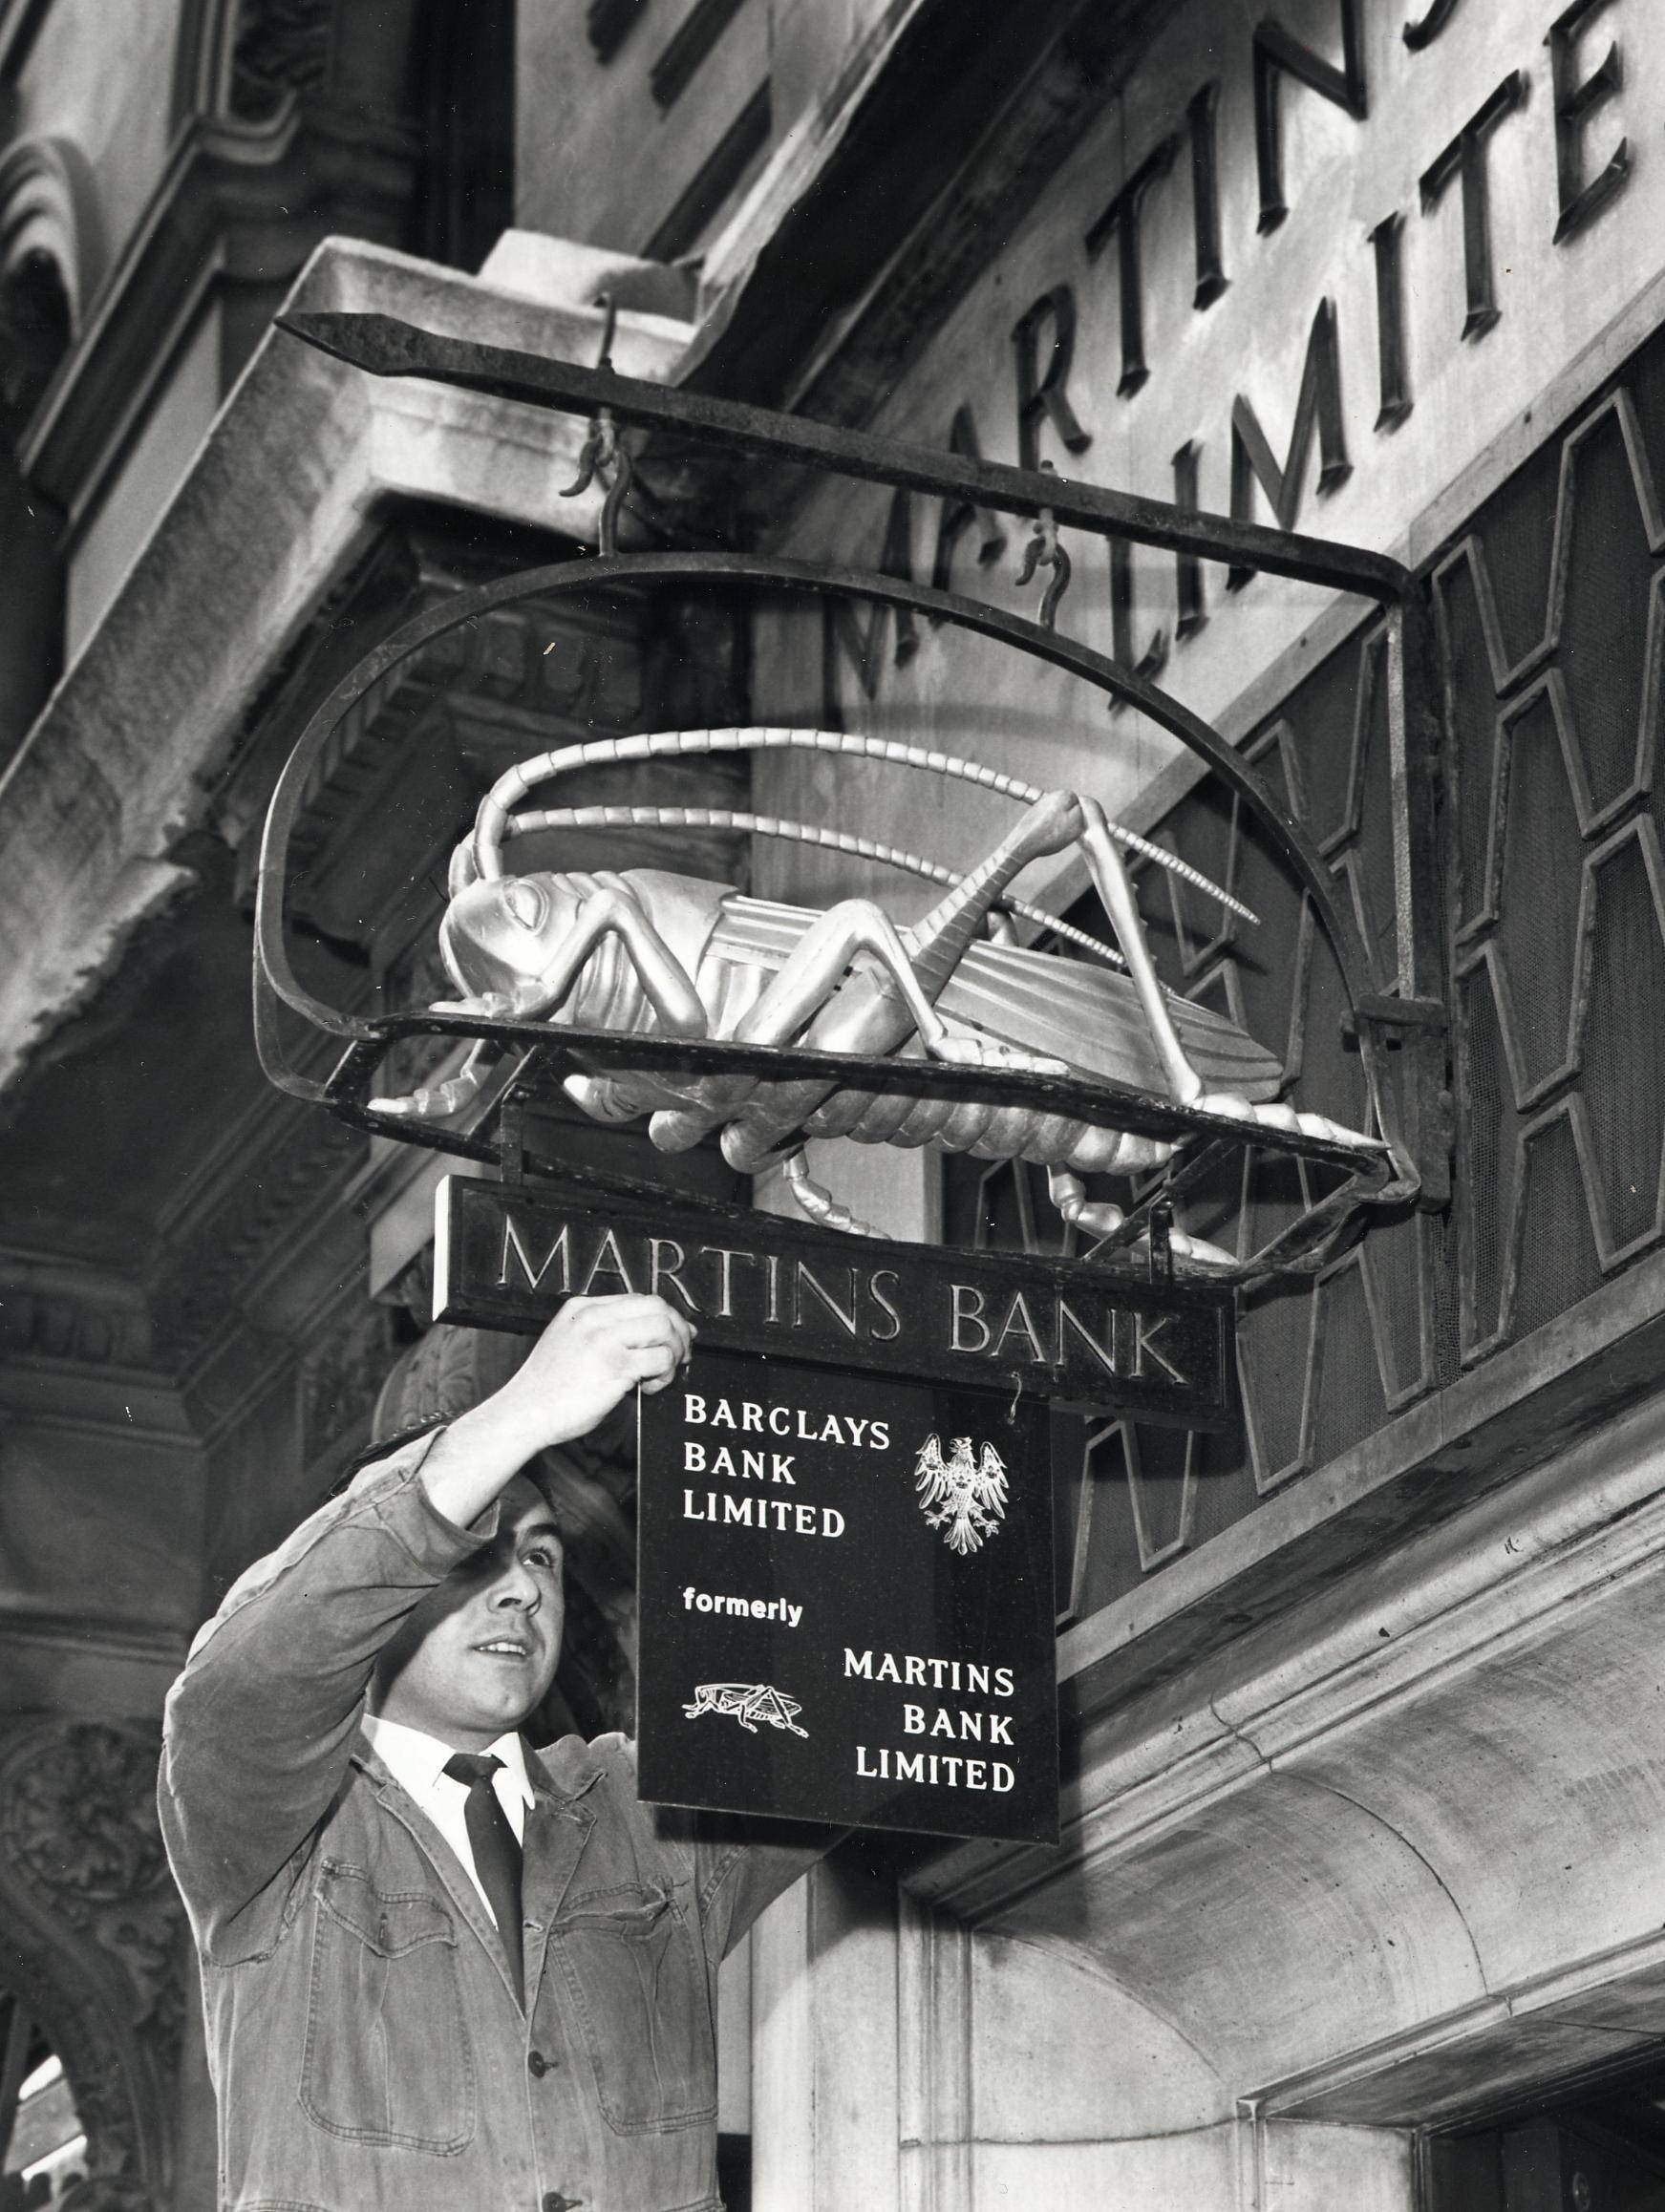 Martins Bank and Barclays Bank signs, Liverpool